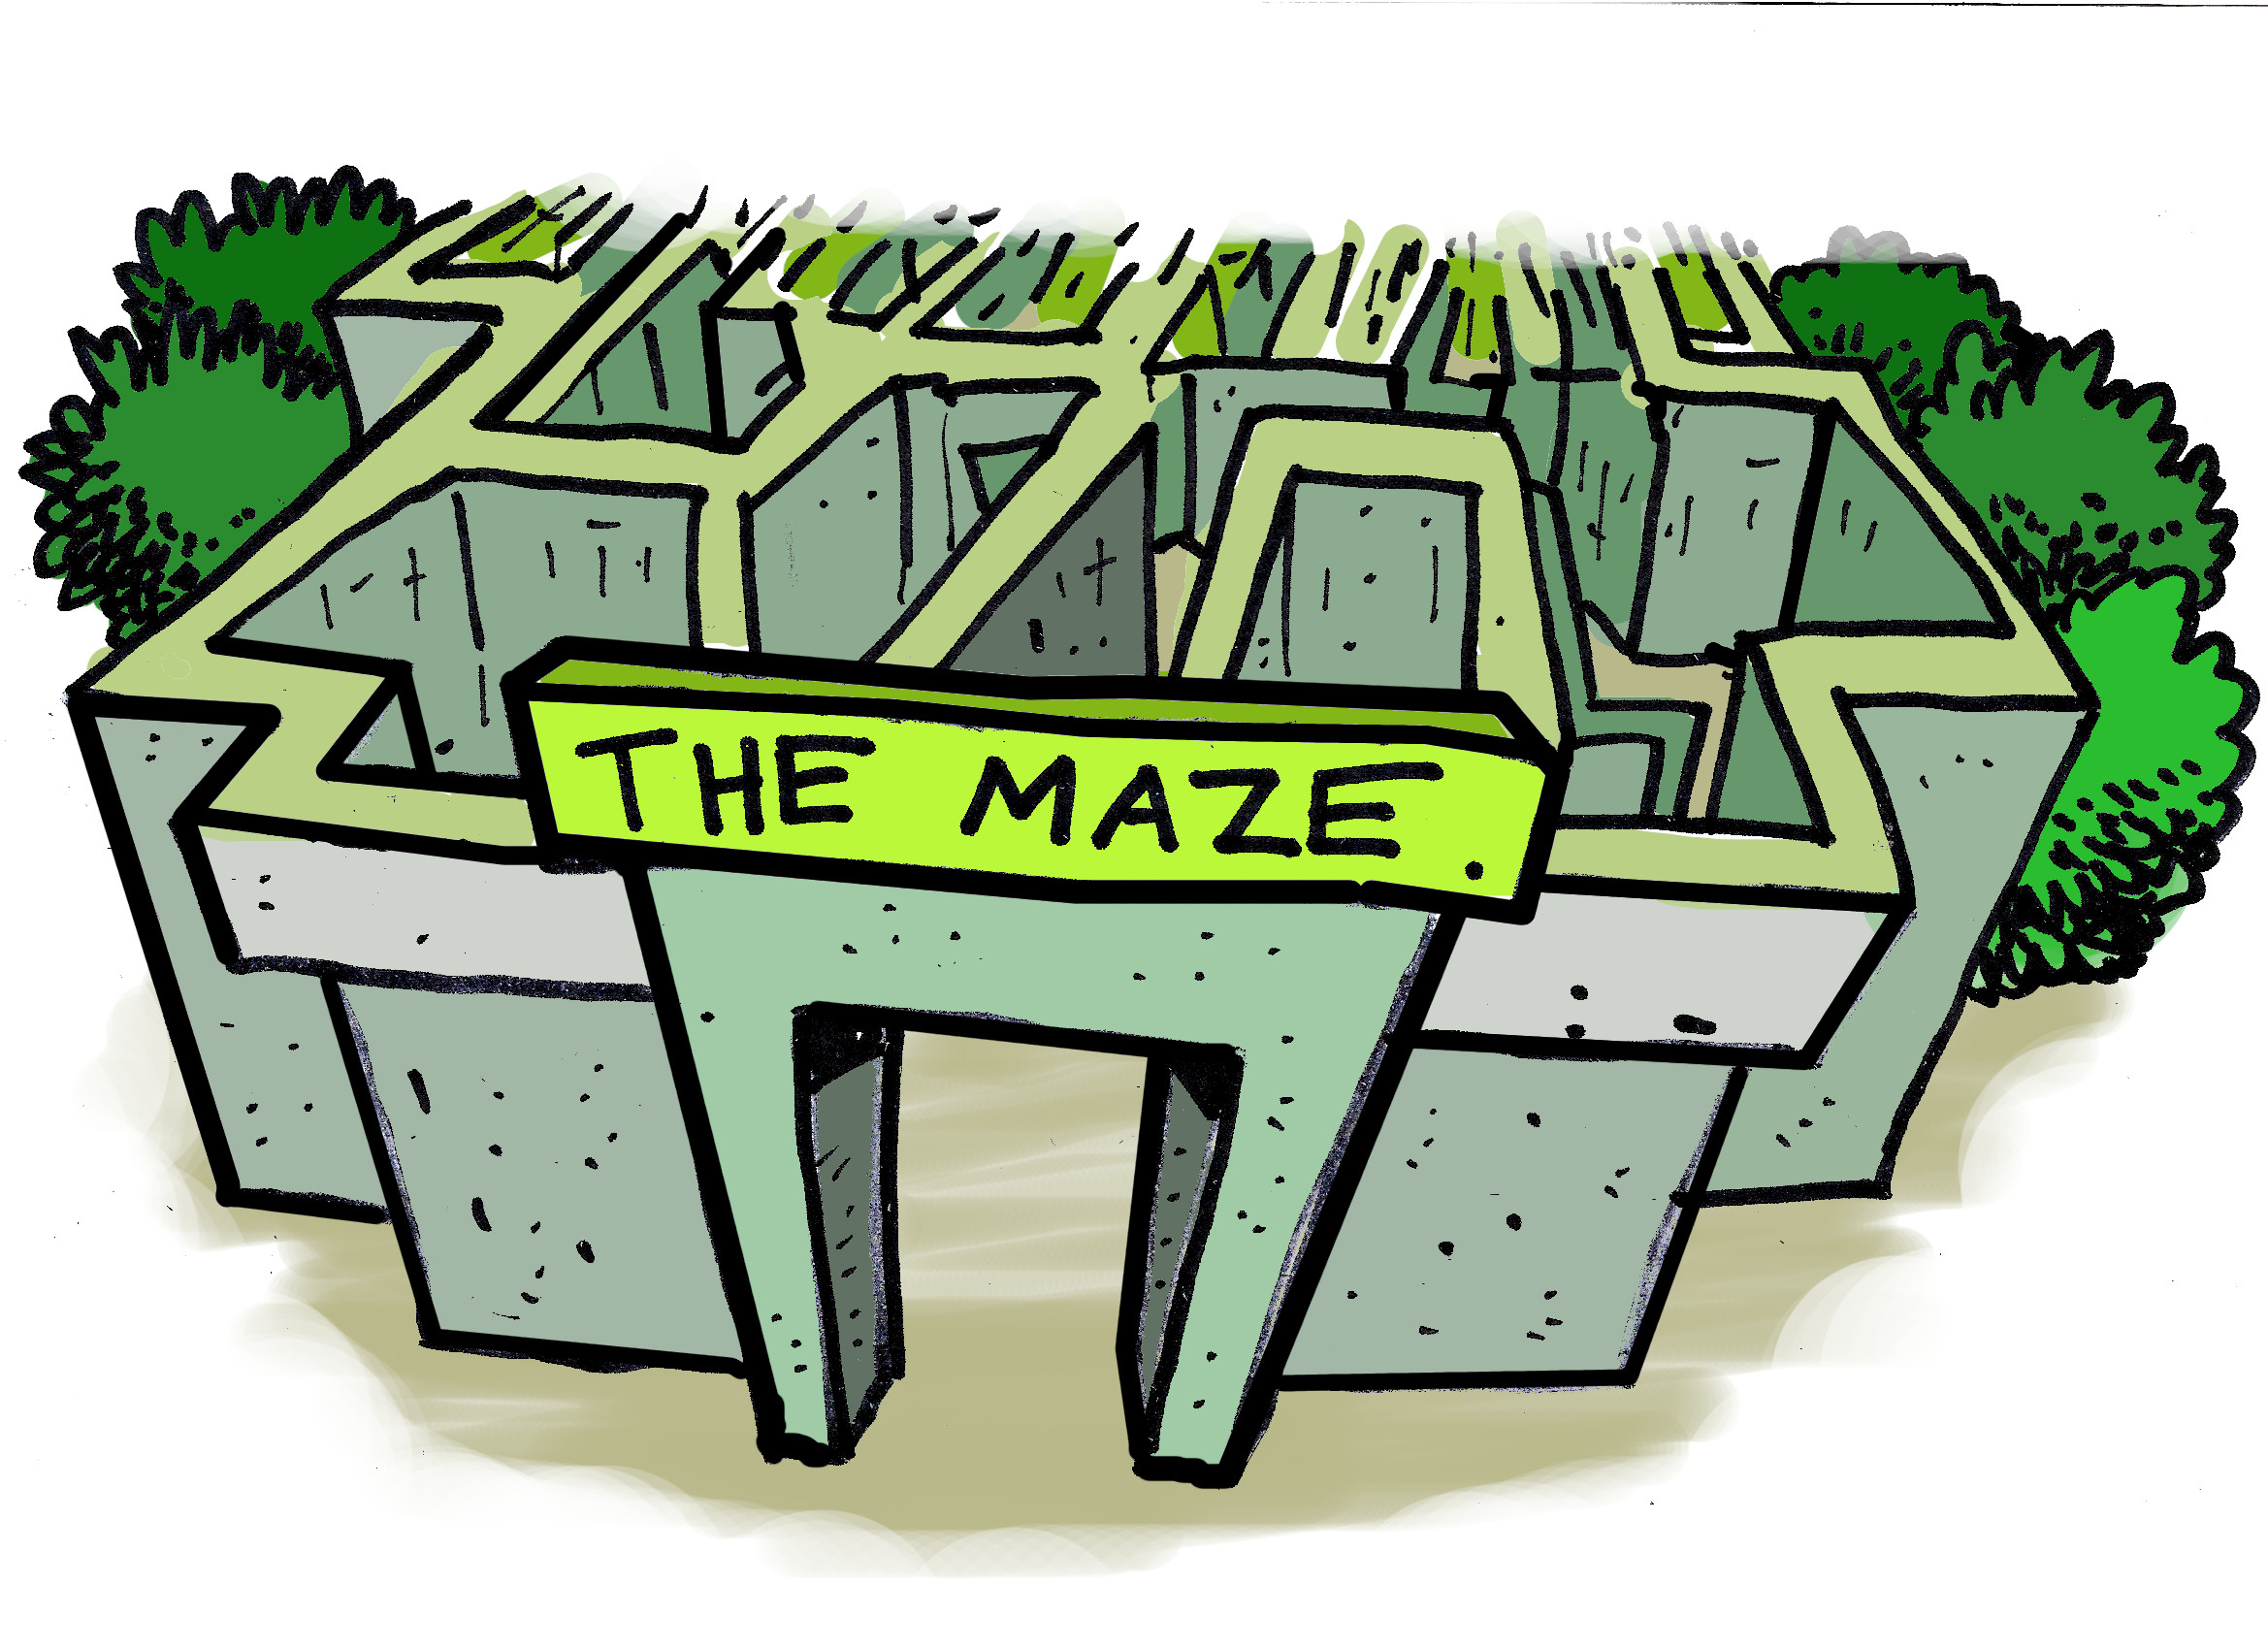 the mysterious, spooky, and likely unfinished maze